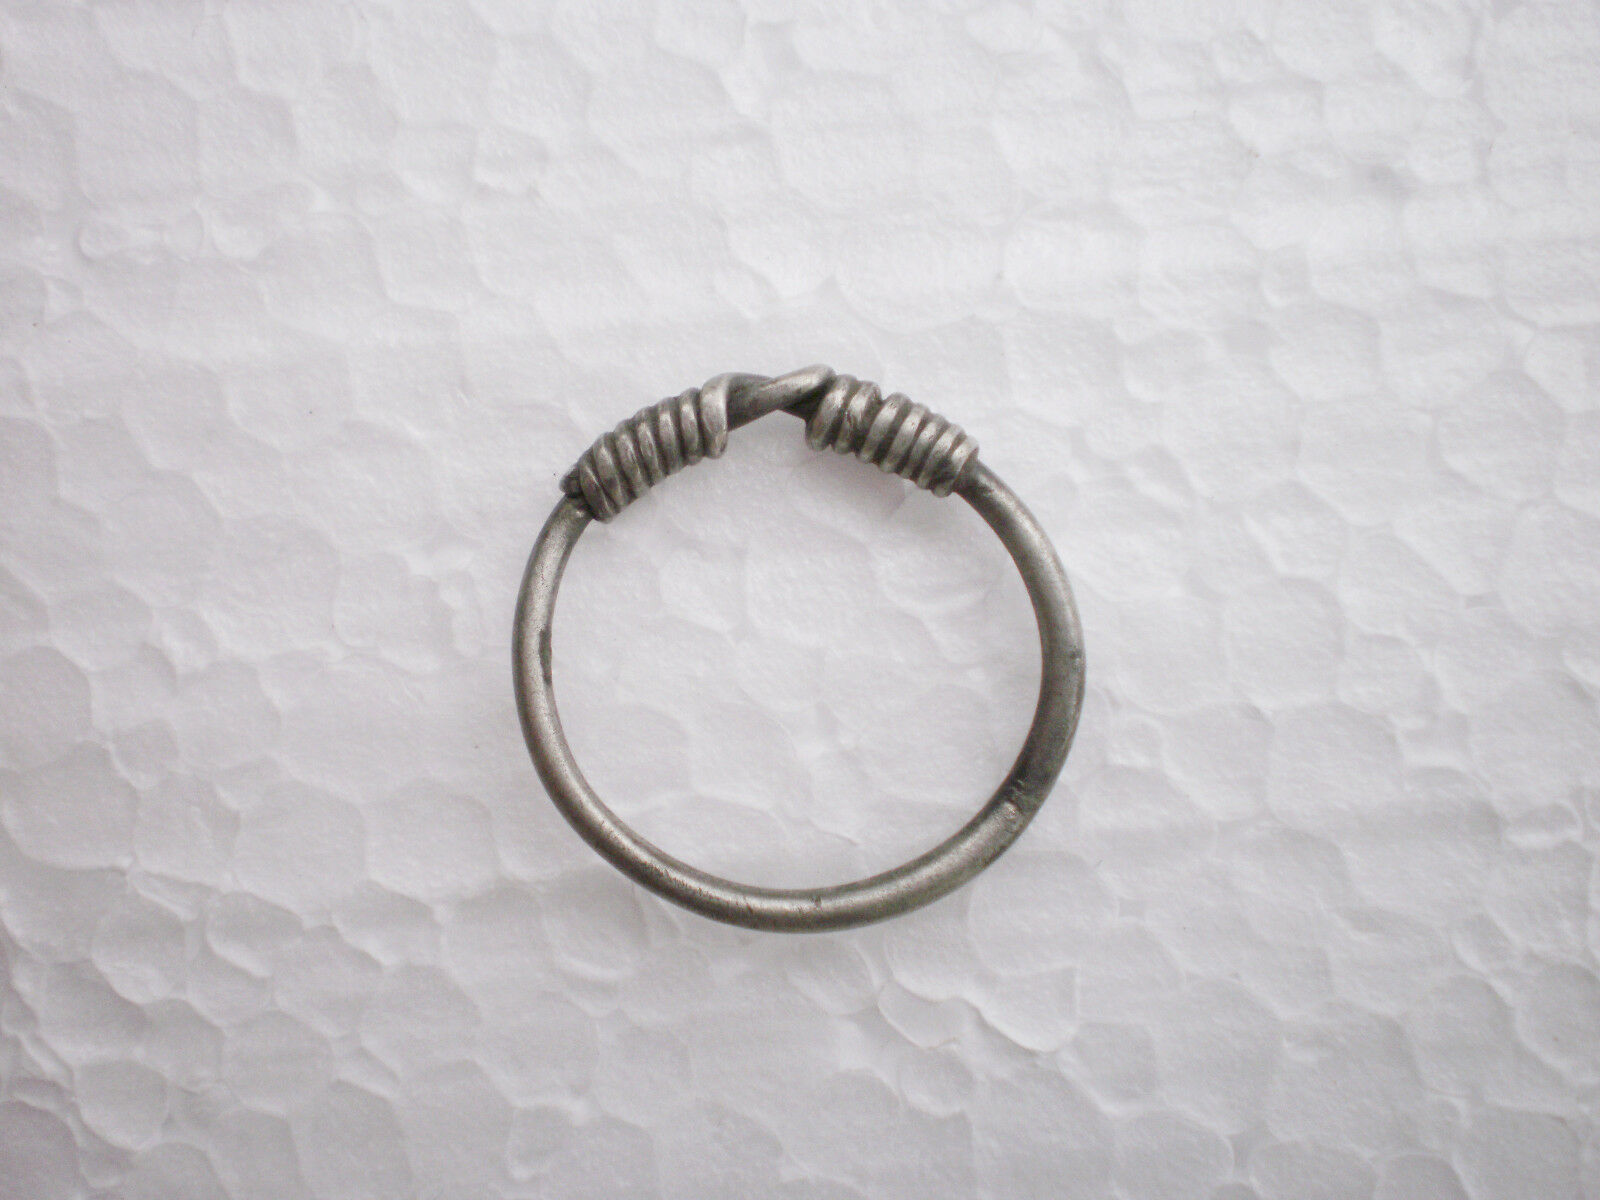 RARE ANCIENT Authentic Silver FINGER RING   Goths 3 - 4 century AD #